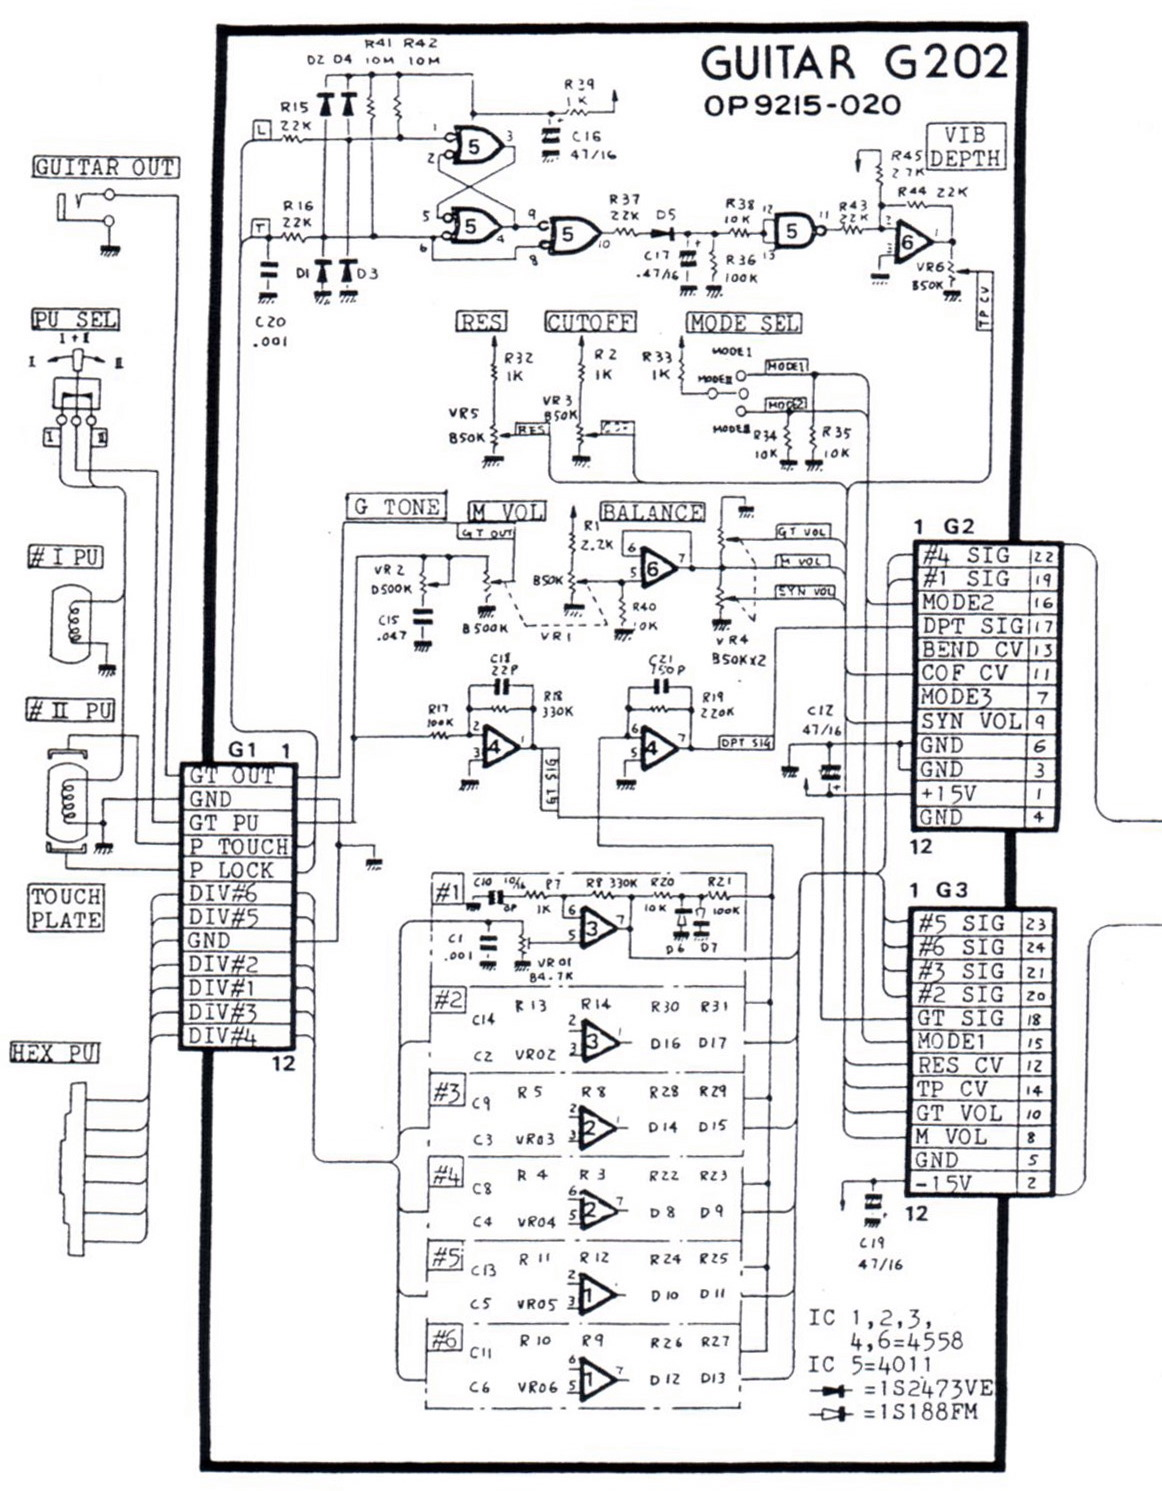 Fender 1948 Daiwa Schematic Diagram Free Download Wiring Owners Manual The G 202